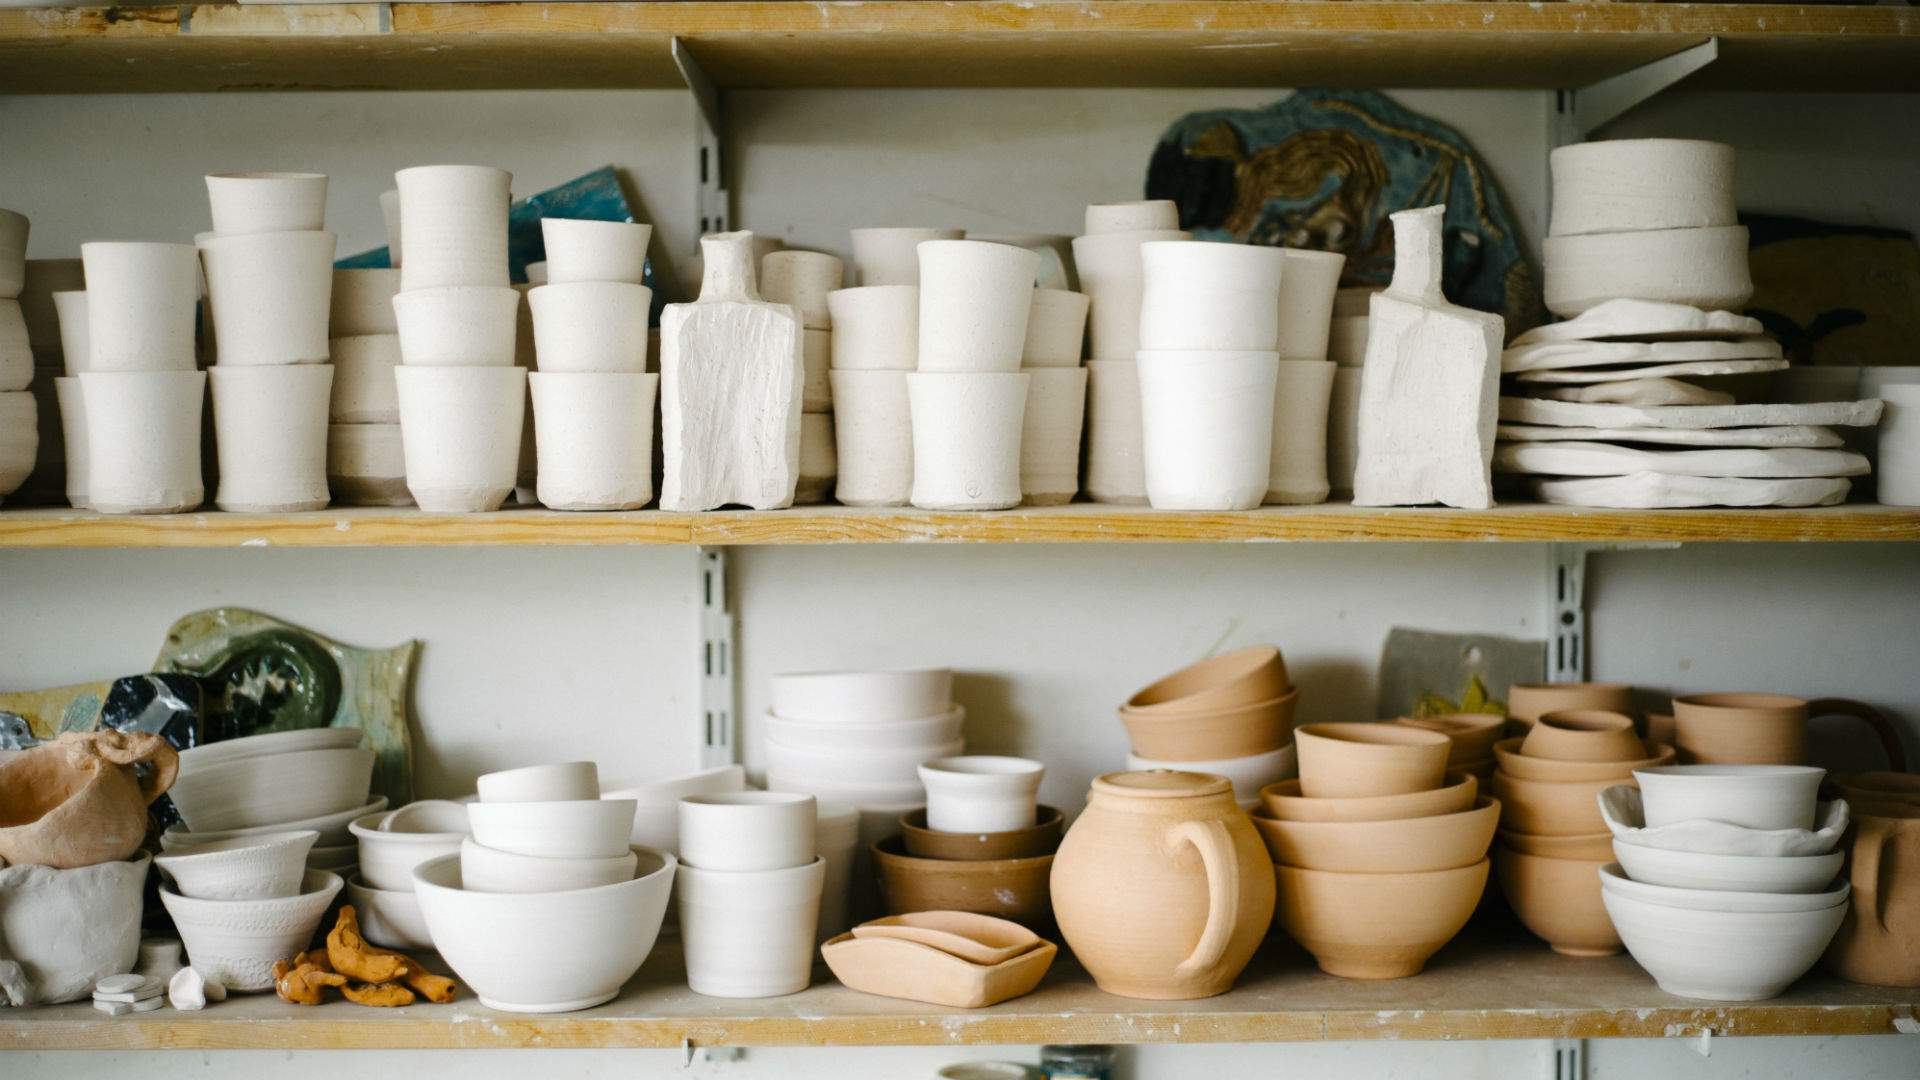 The Company of Potters